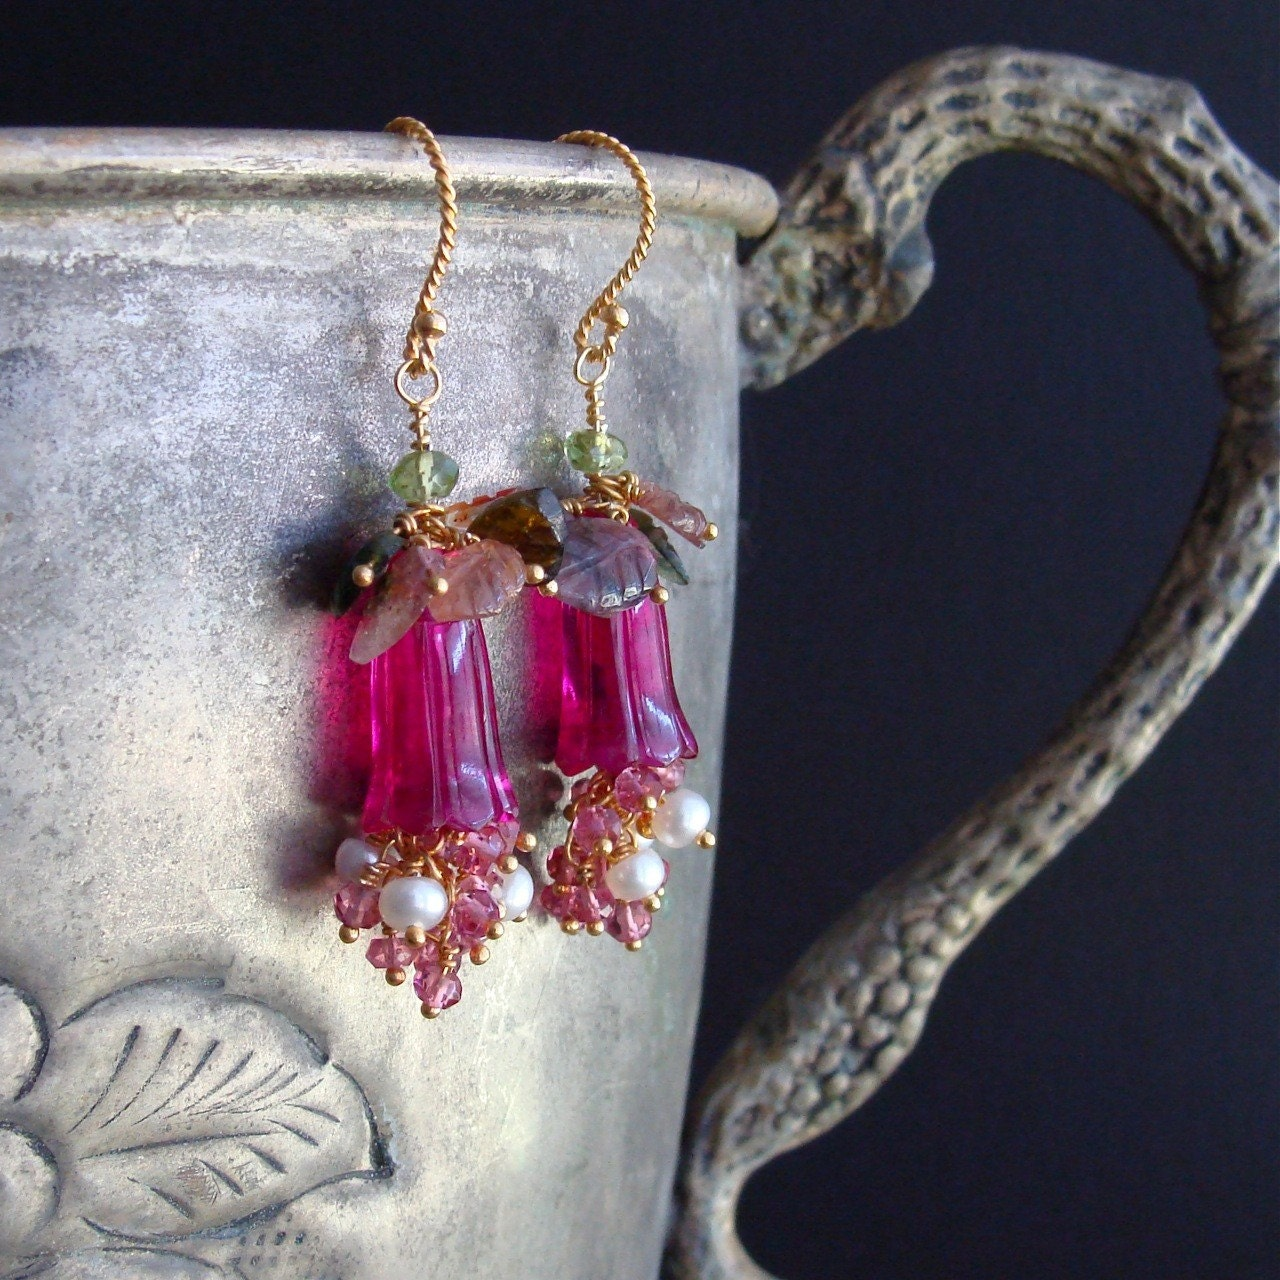 Veronica Earrings - Carved Hot Pink Quartz Flowers, Hot Pink Topaz, Button Pearls and Watermelon Tourmaline Carved Leaves